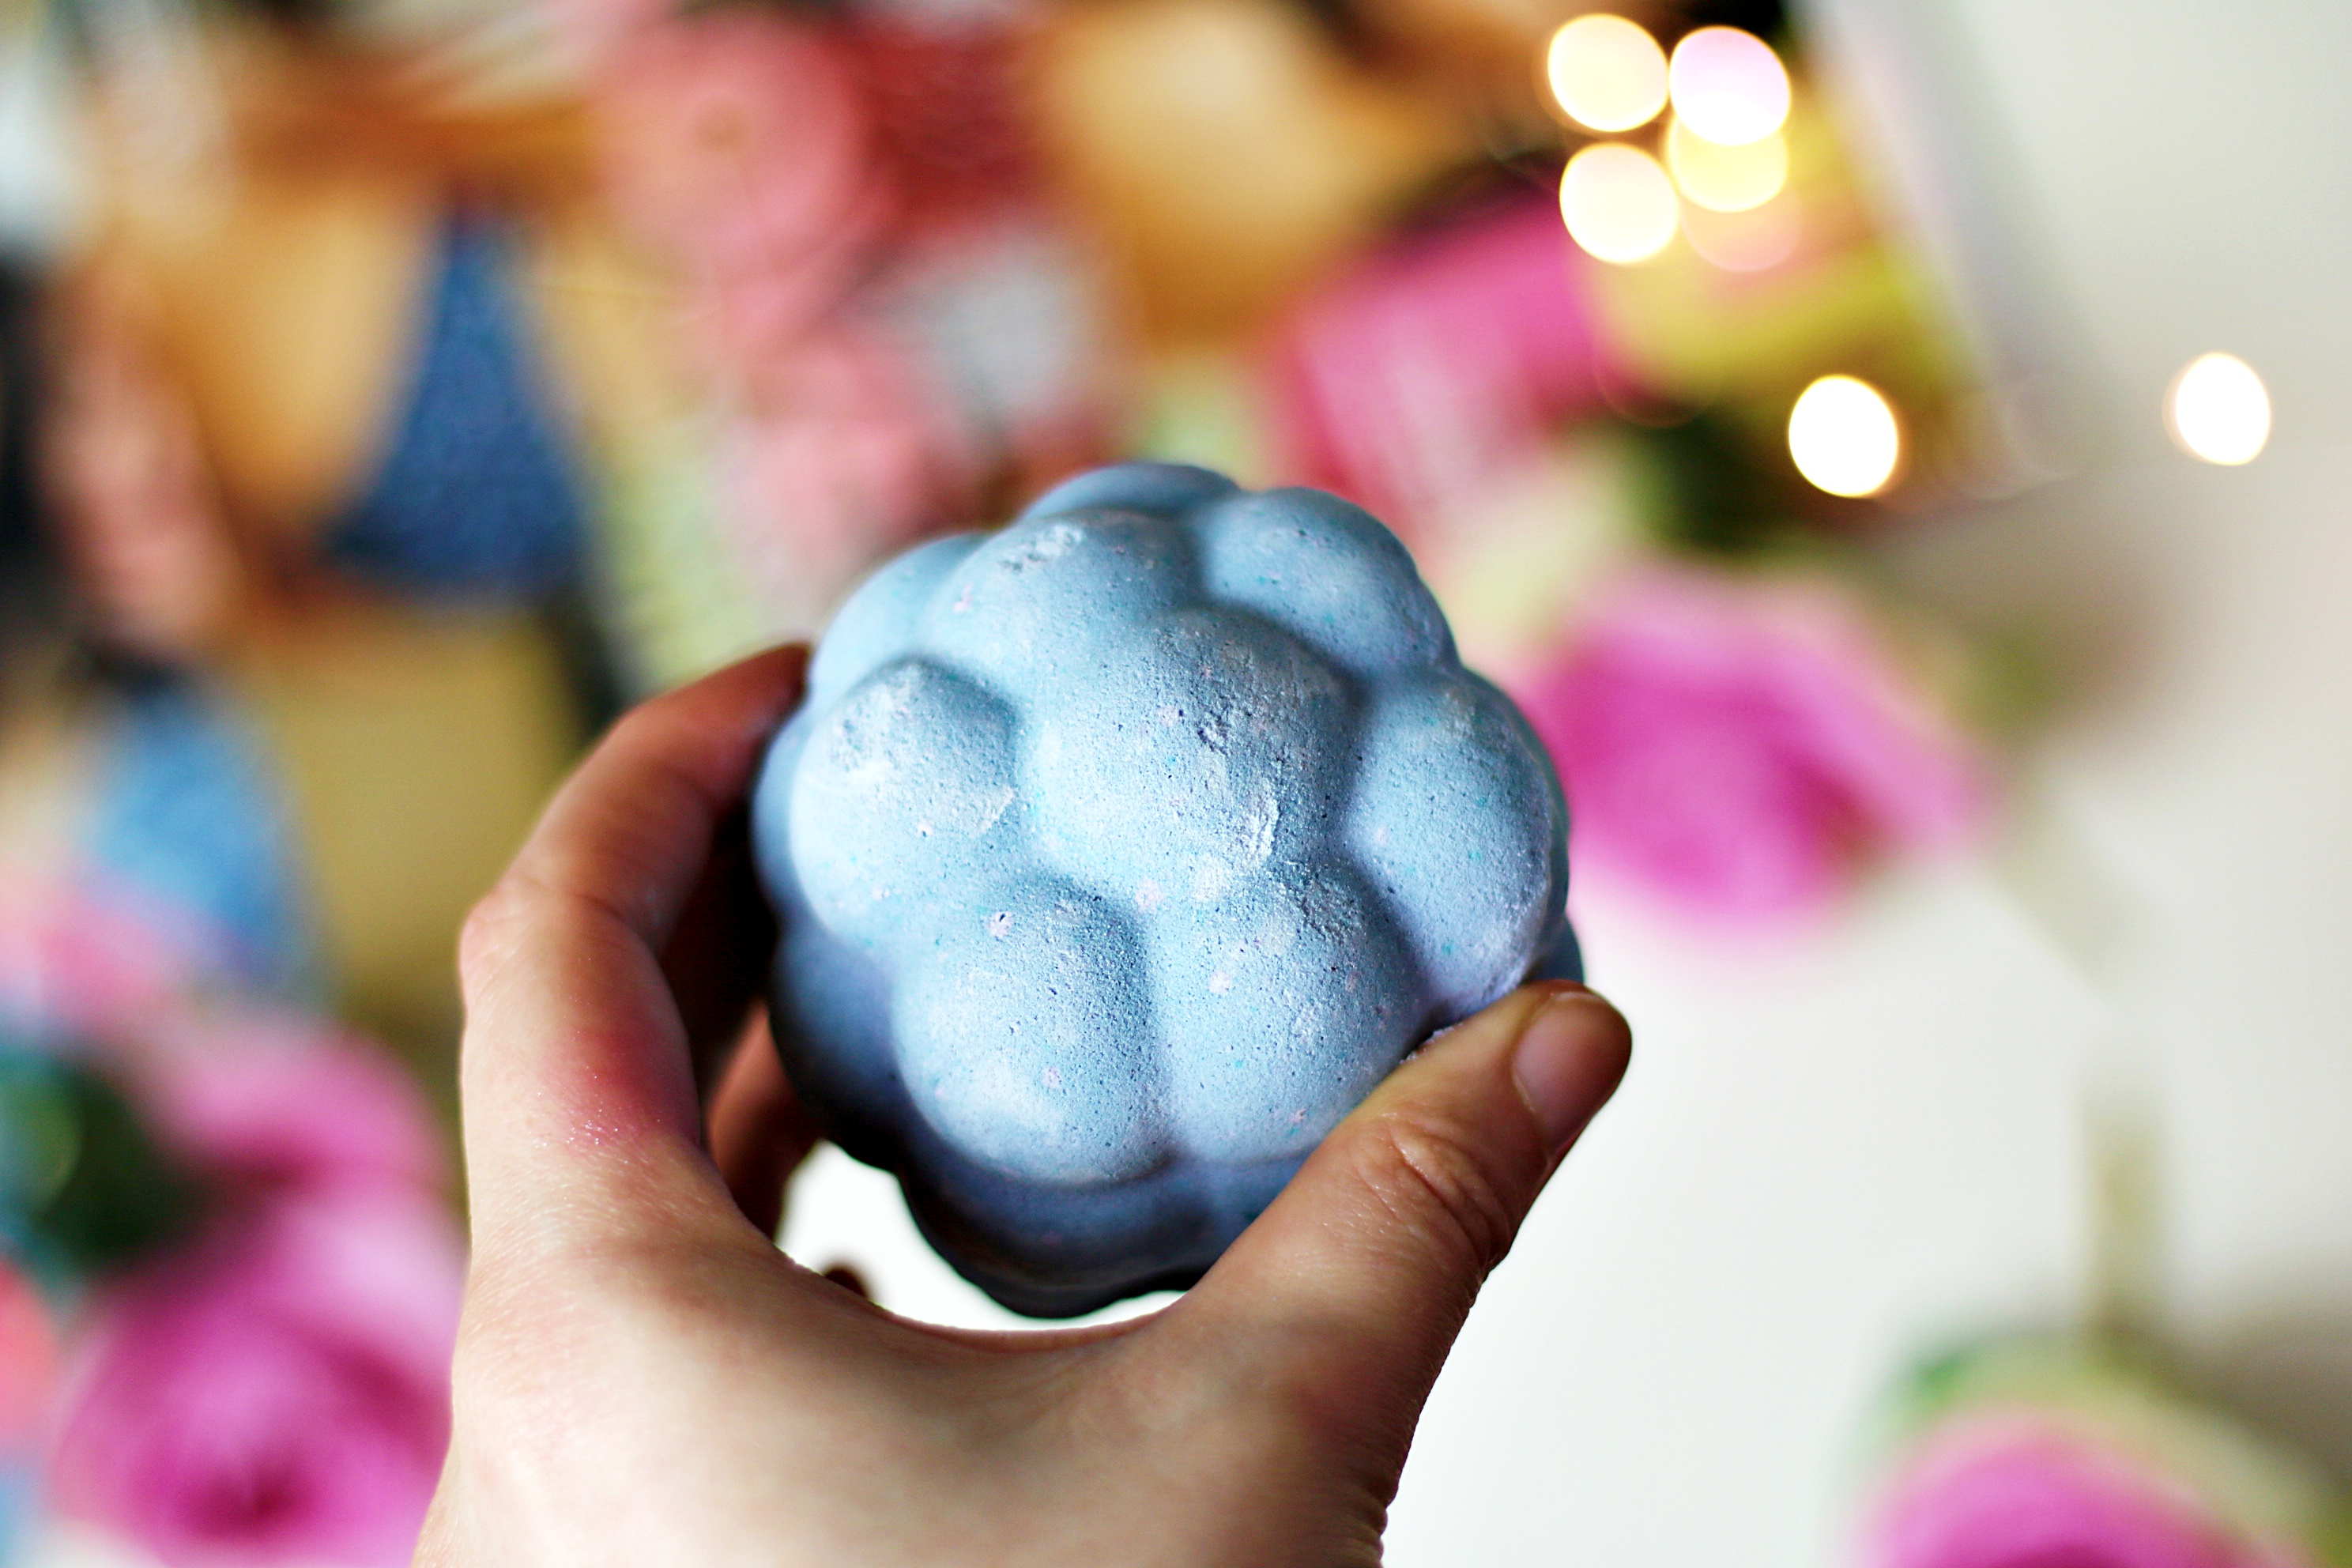 Lush Harajuku Blackberry Bath Bomb